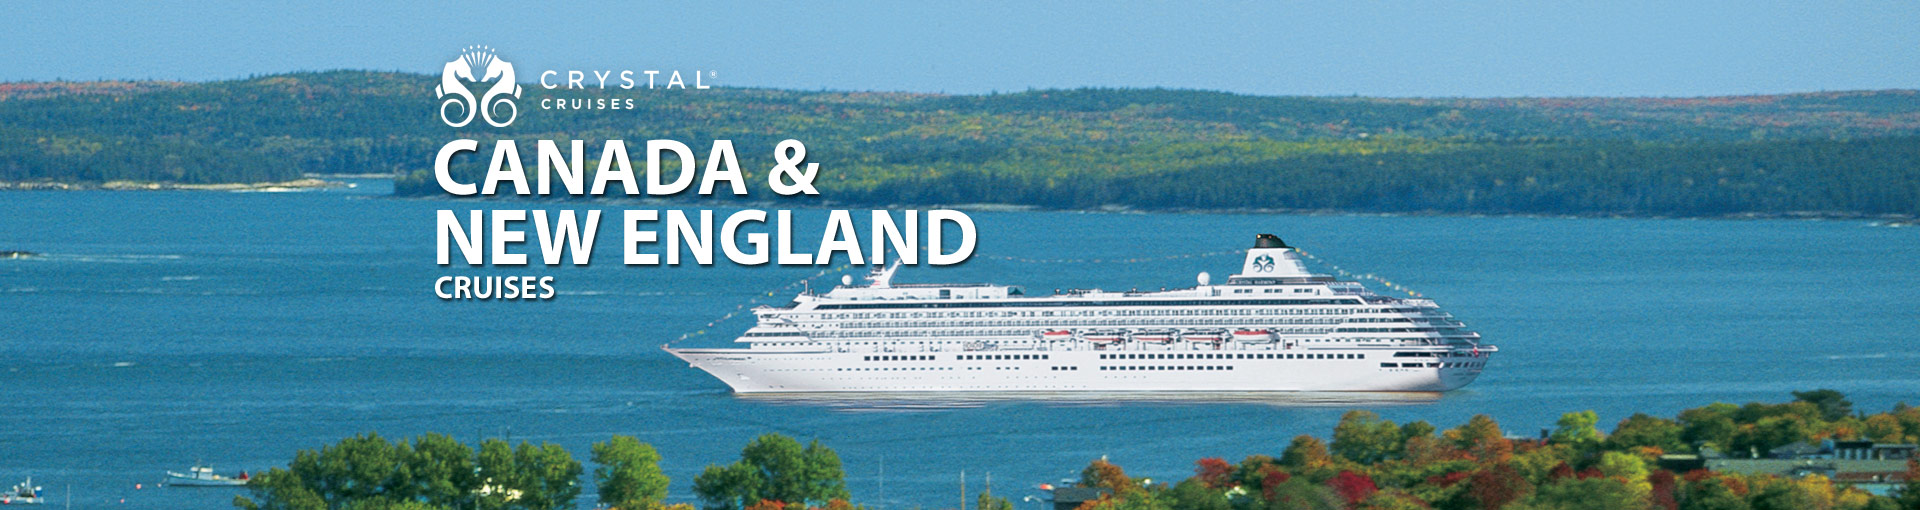 Crystal Cruises Canada New England Cruises